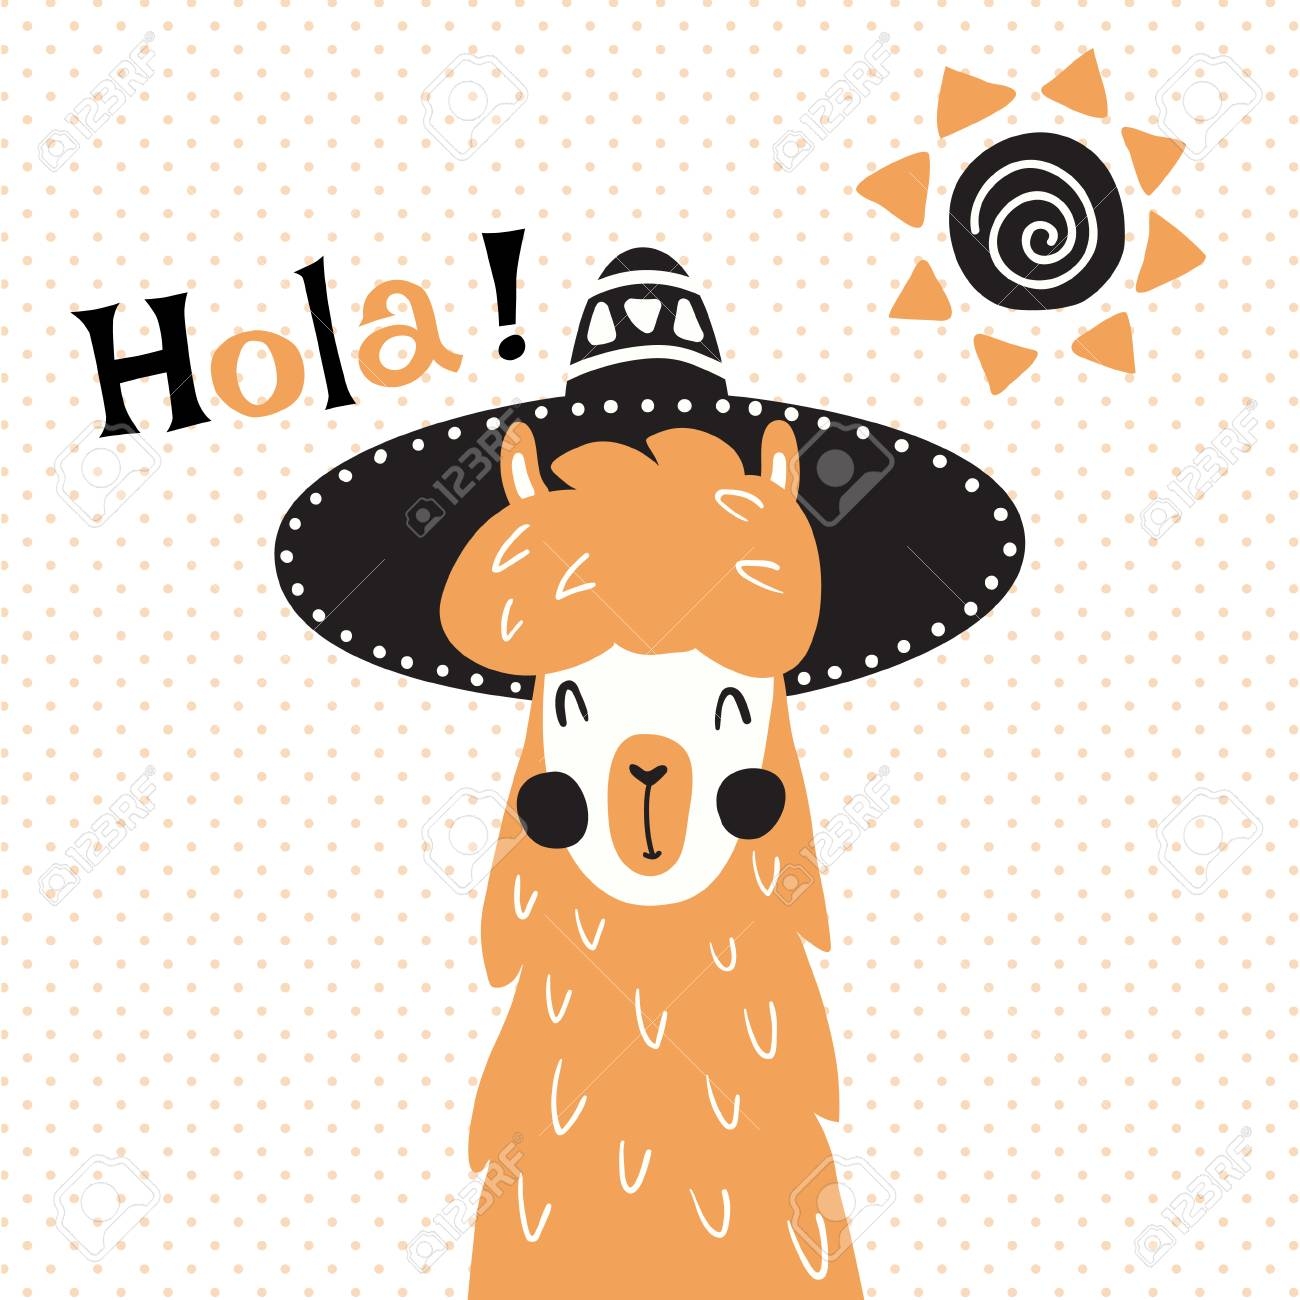 hight resolution of vector vector illustration a cute llama in mexican sombrero hat hola spanish text which is translated as hello